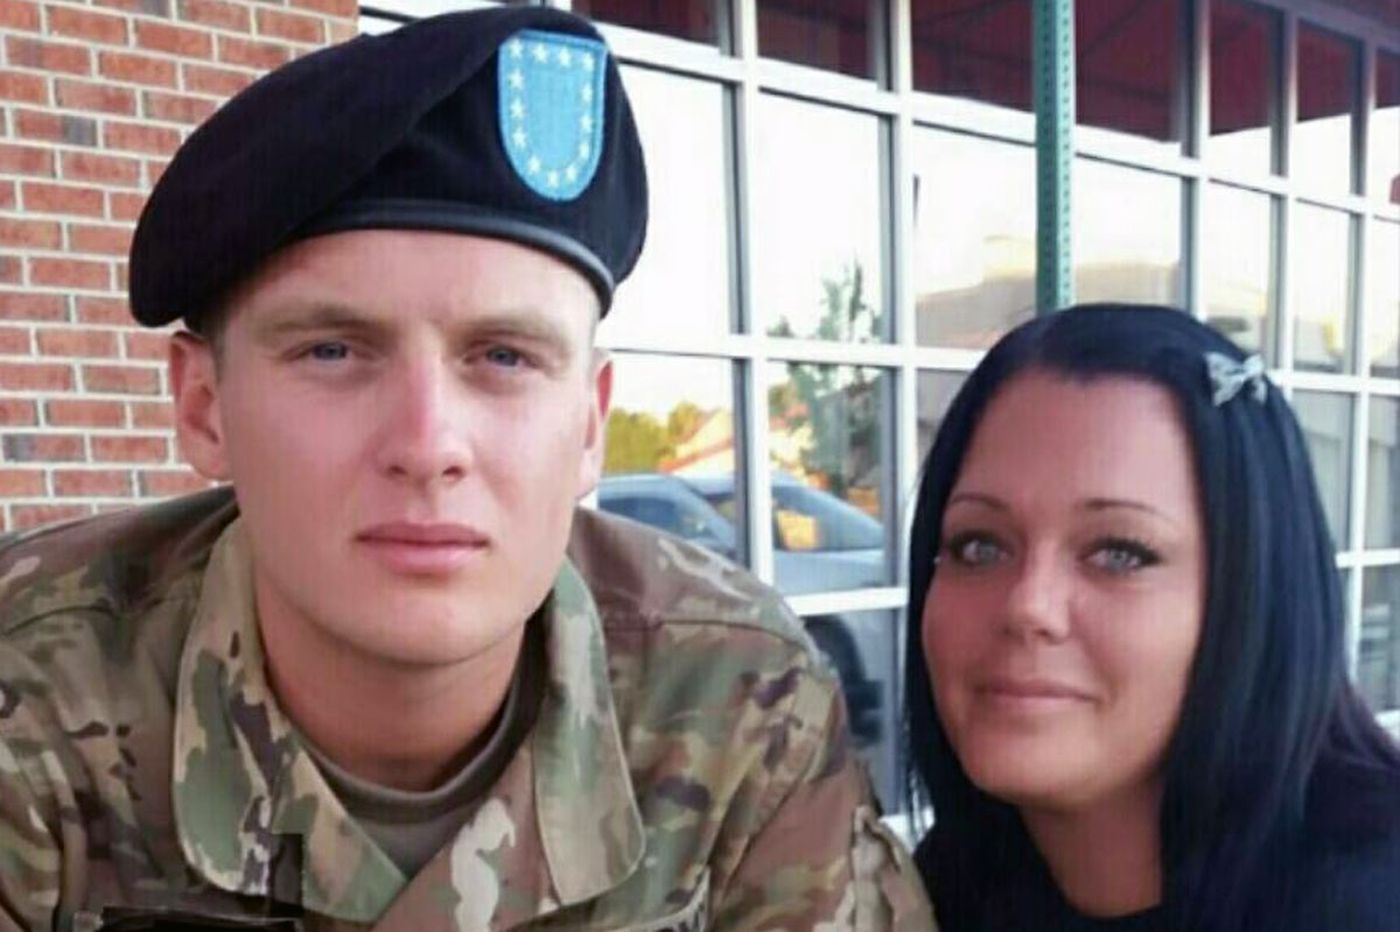 Cops: 'Derogatory' Army comment led to a soldier's broken jaw on New Year's Day